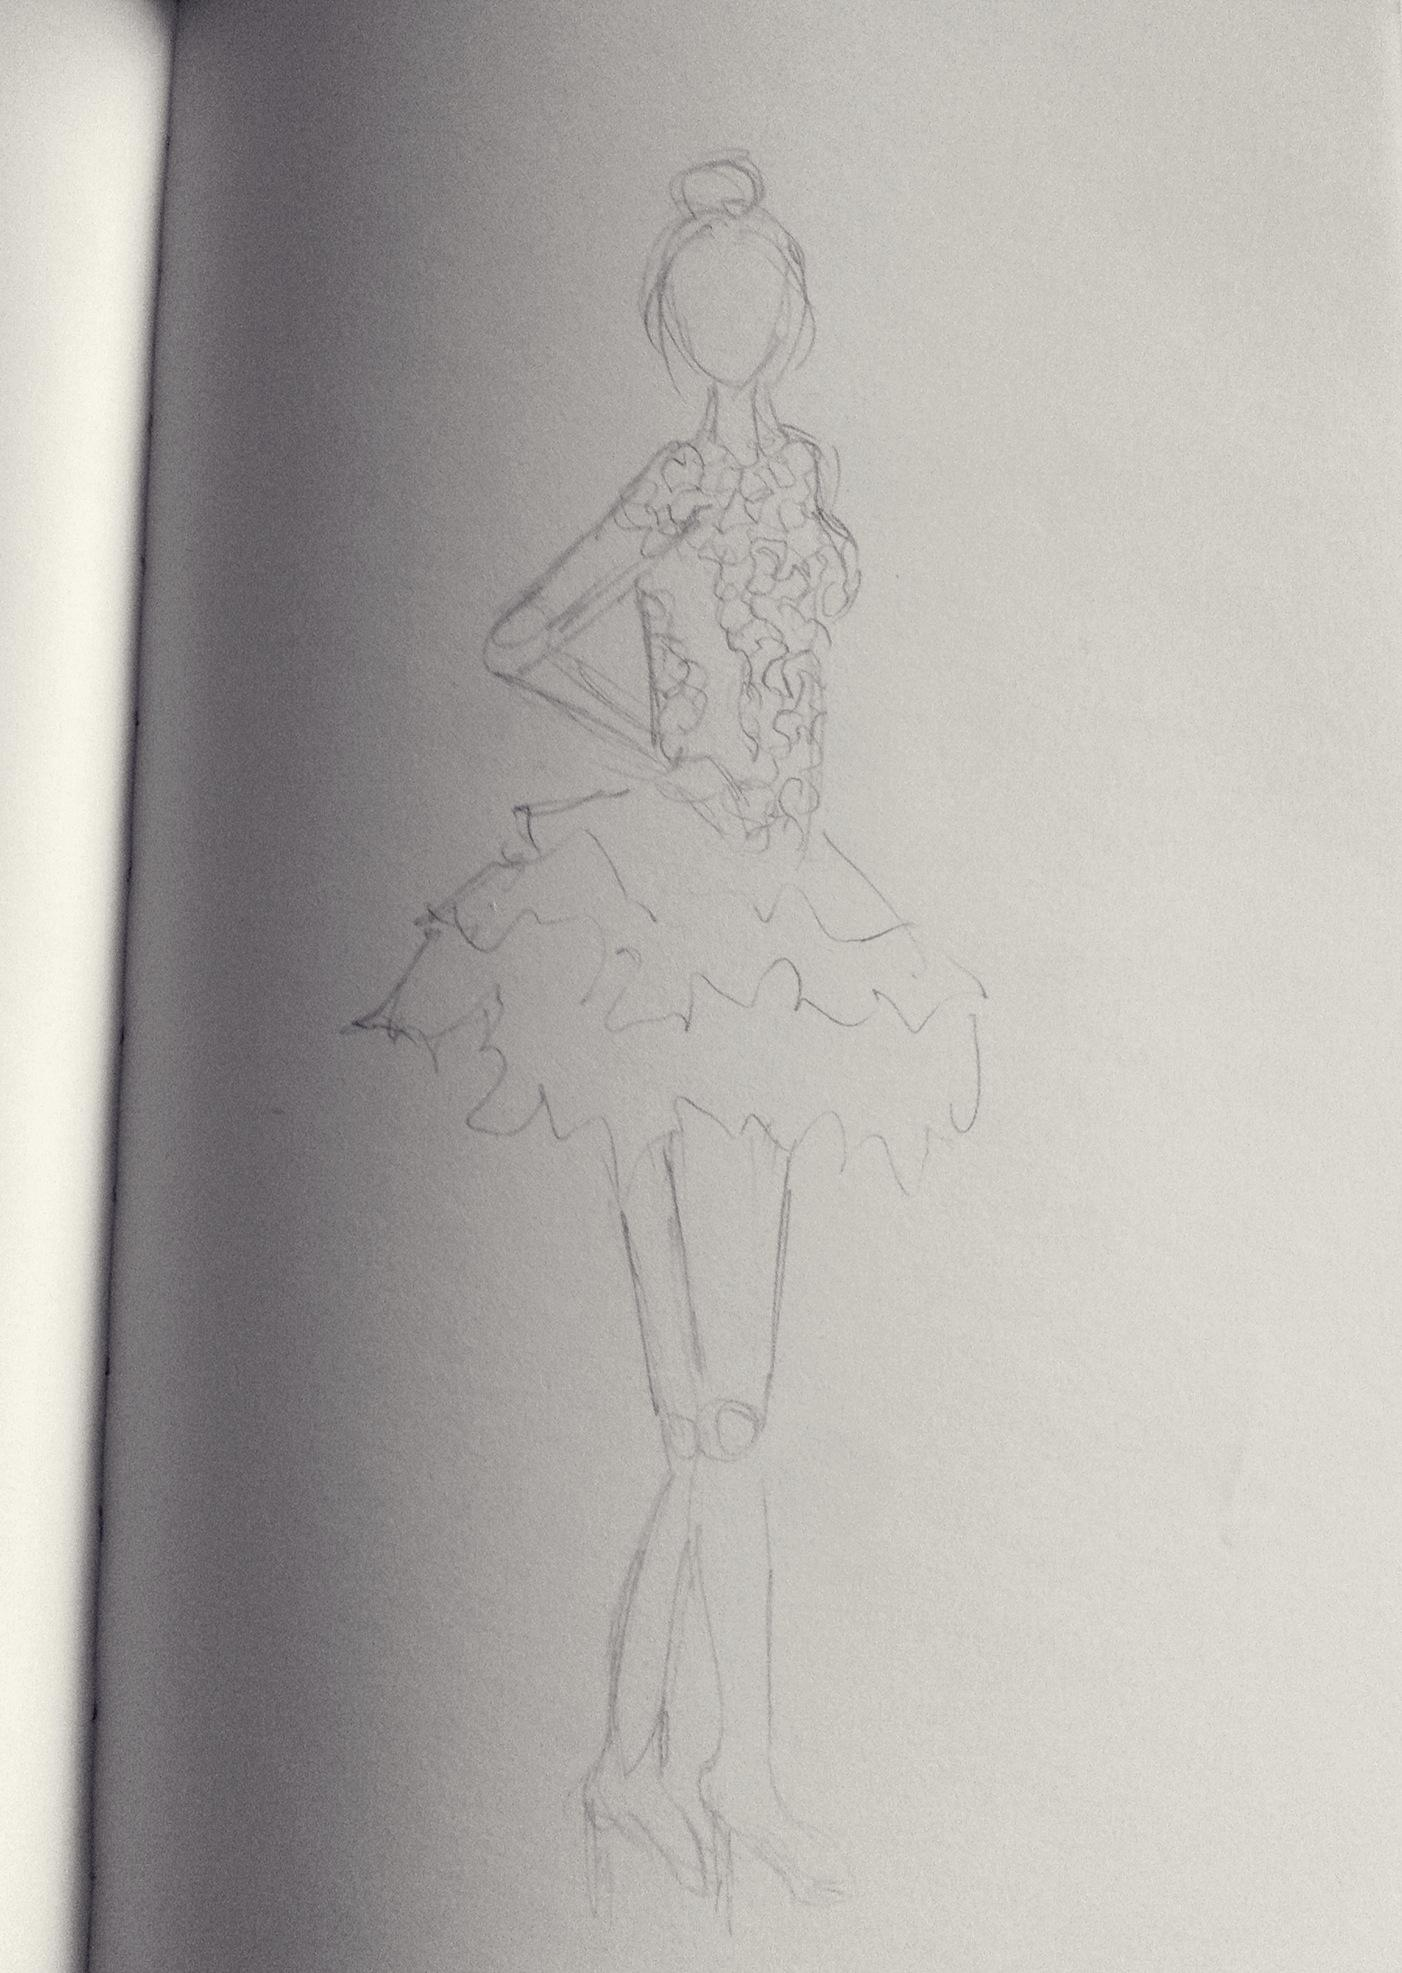 Sketches--Global Romanticism - image 13 - student project